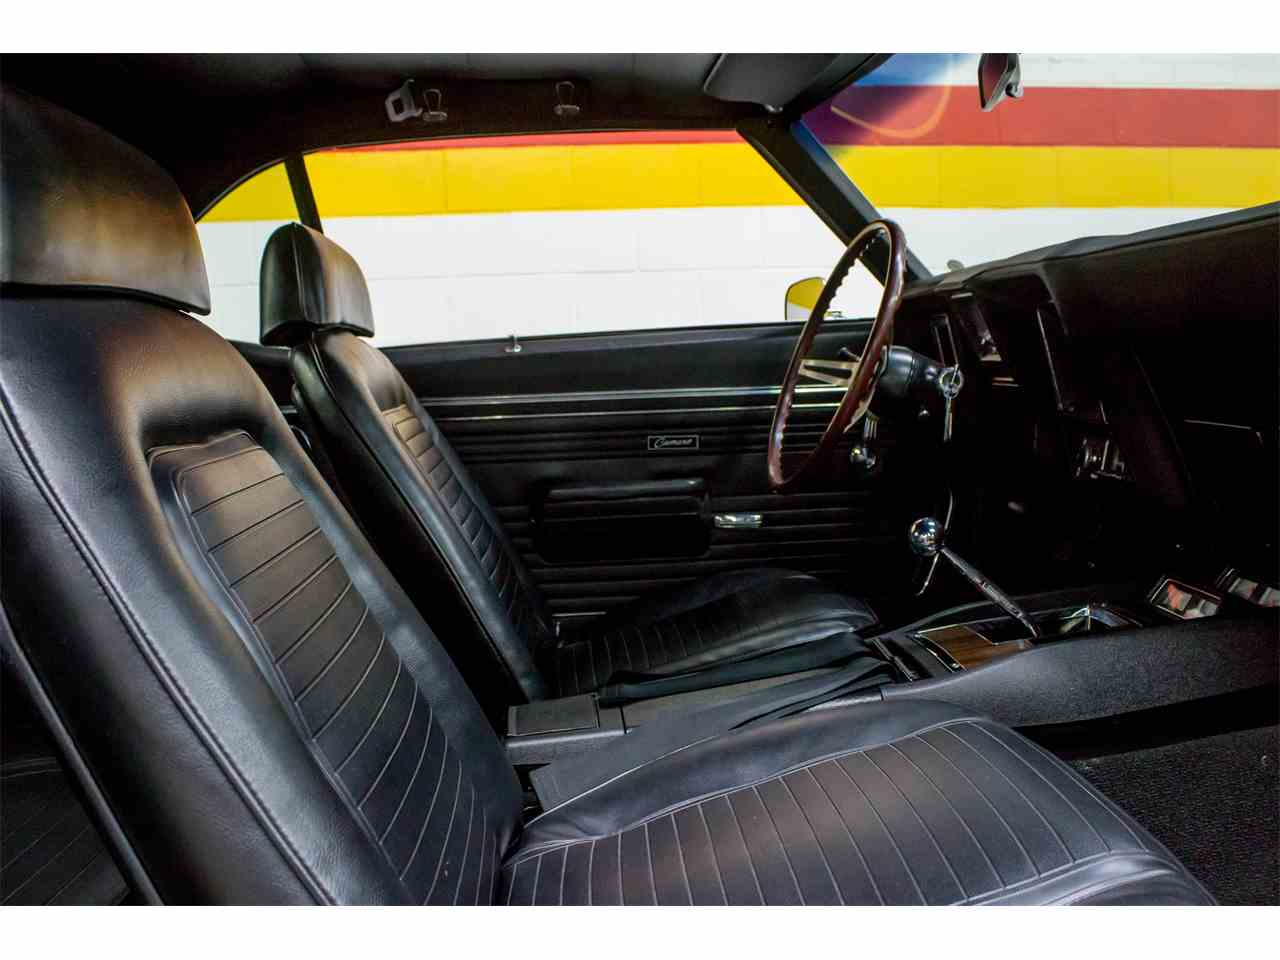 Large Picture of '69 Camaro Z28 located in Quebec - $79,000.00 Offered by John Scotti Classic Cars - M8KS